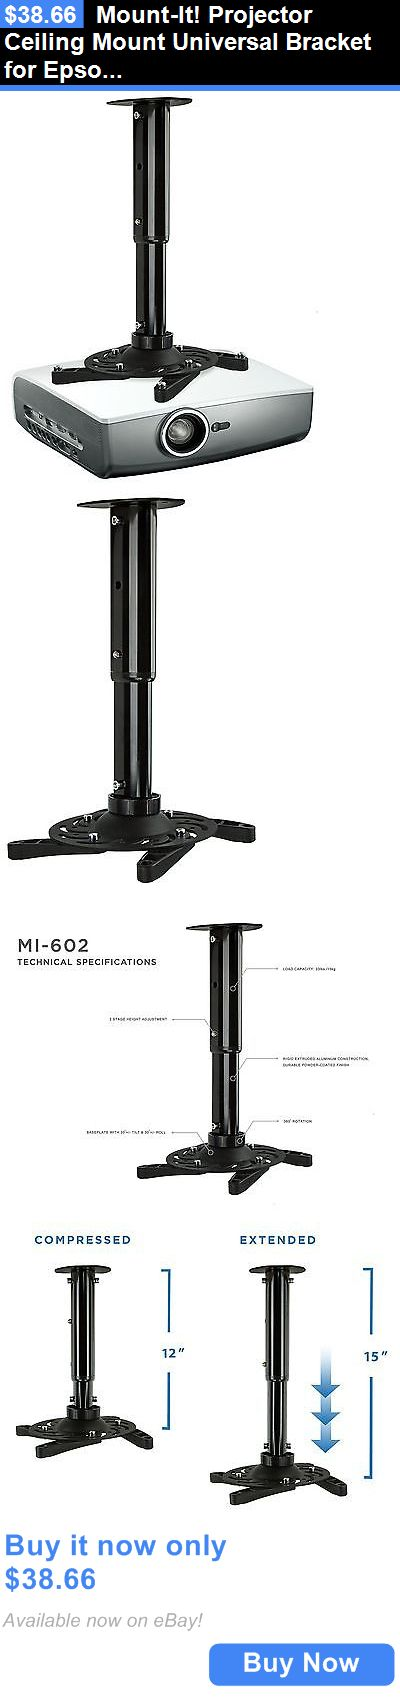 Projector Mounts and Stands: Mount-It! Projector Ceiling Mount Universal Bracket For Epson Benq Optoma Vie... BUY IT NOW ONLY: $38.66